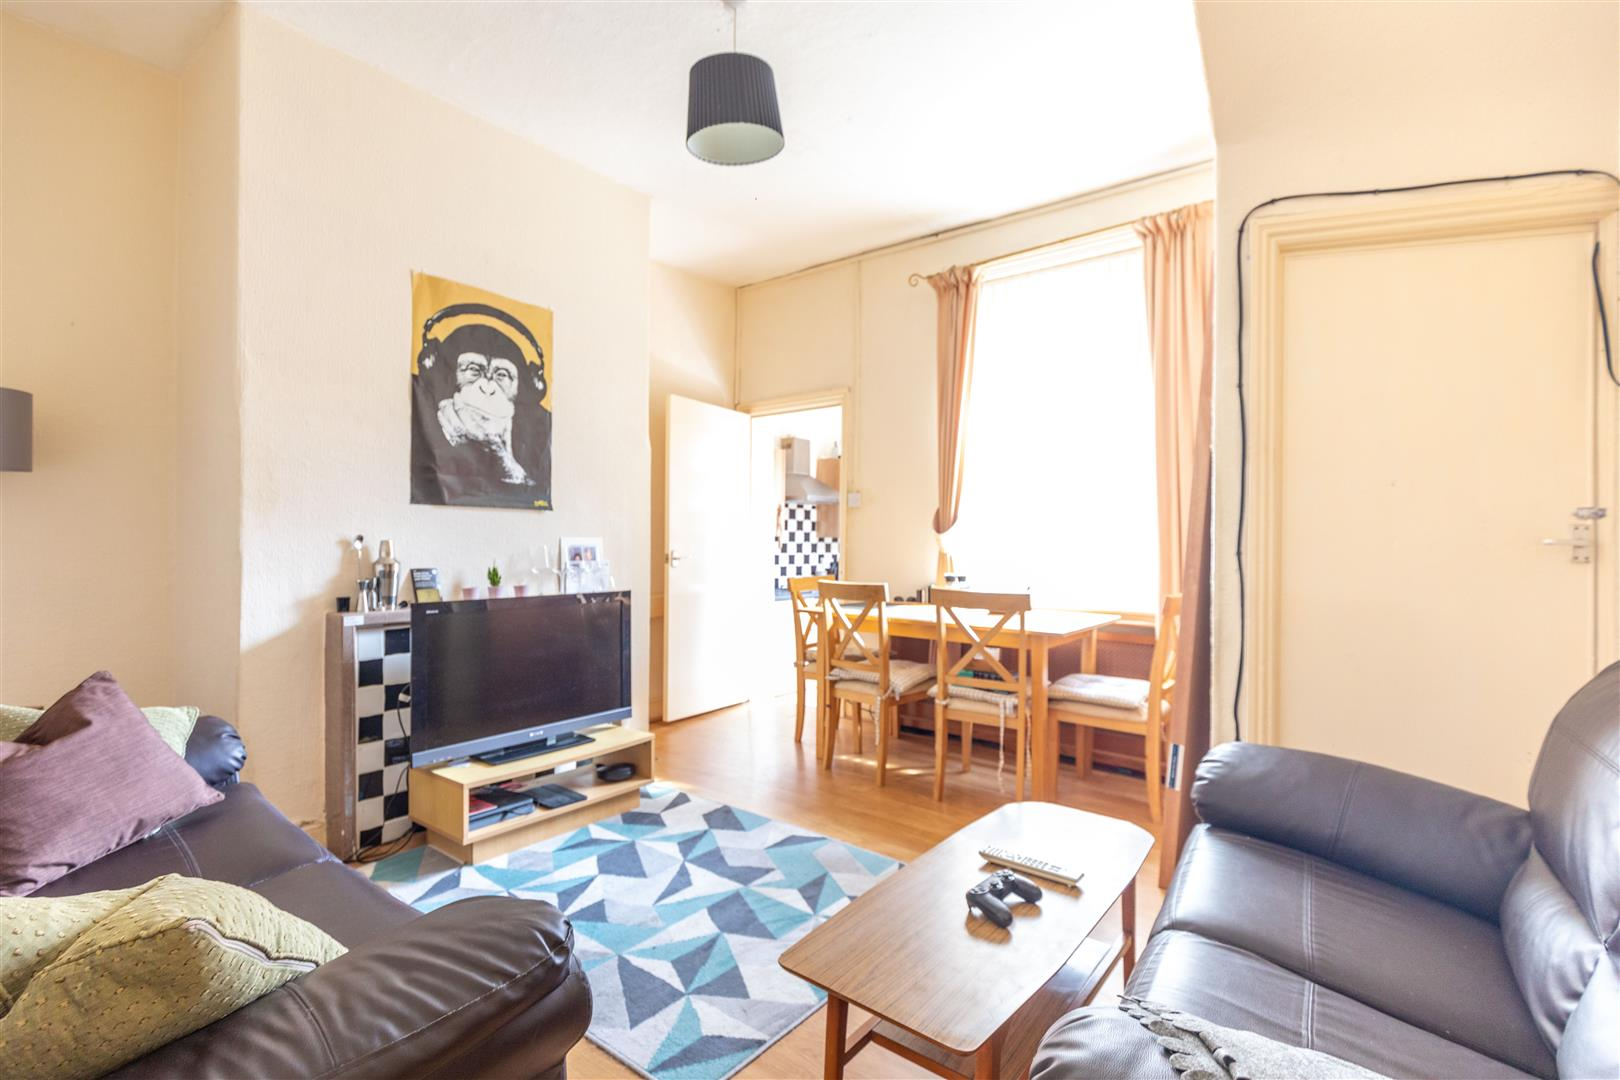 2 bed flat to rent in Newcastle Upon Tyne, NE6 5YH, NE6